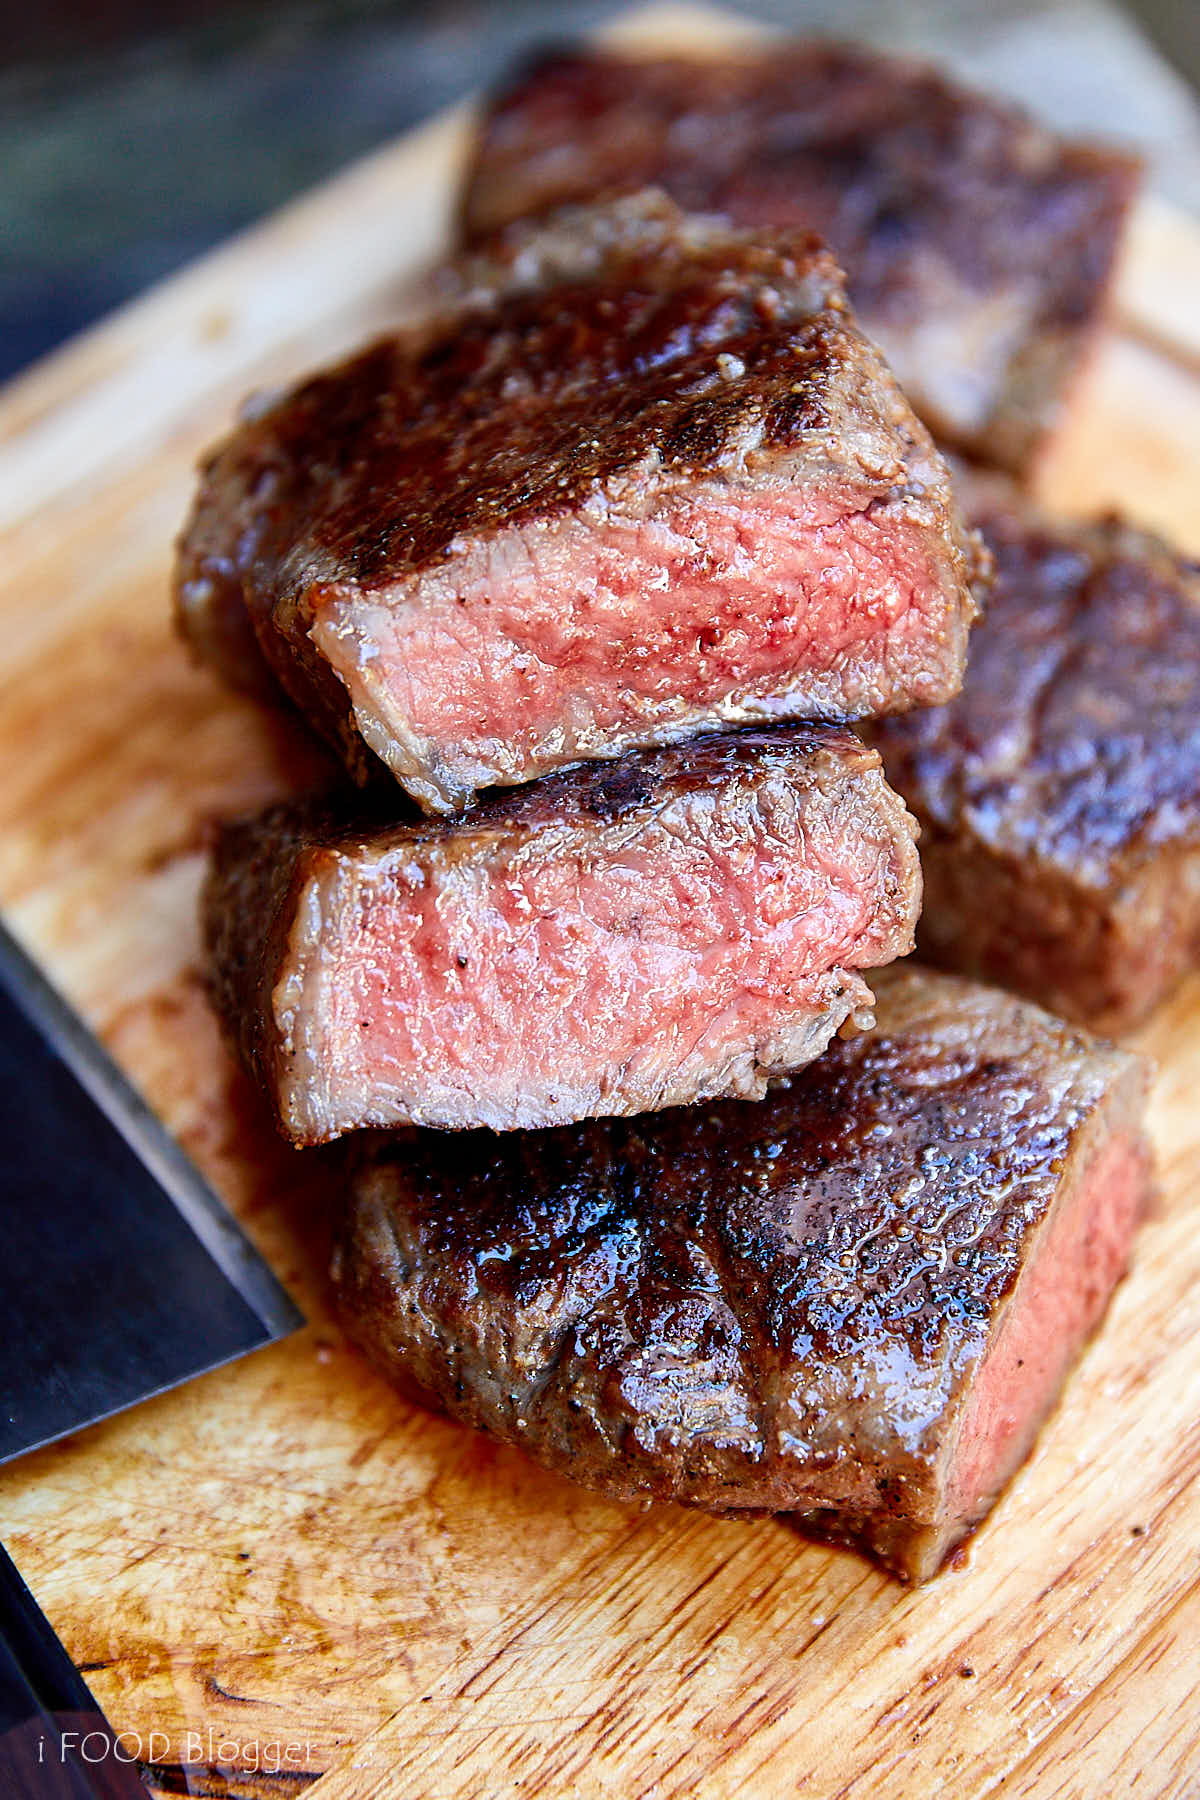 The best tasting, easy to make, tender and very juicy steak. The secret to making the best steak is give it a rest after searing to relax the meat. That's what makes the steak so tender. | ifoodblogger.com